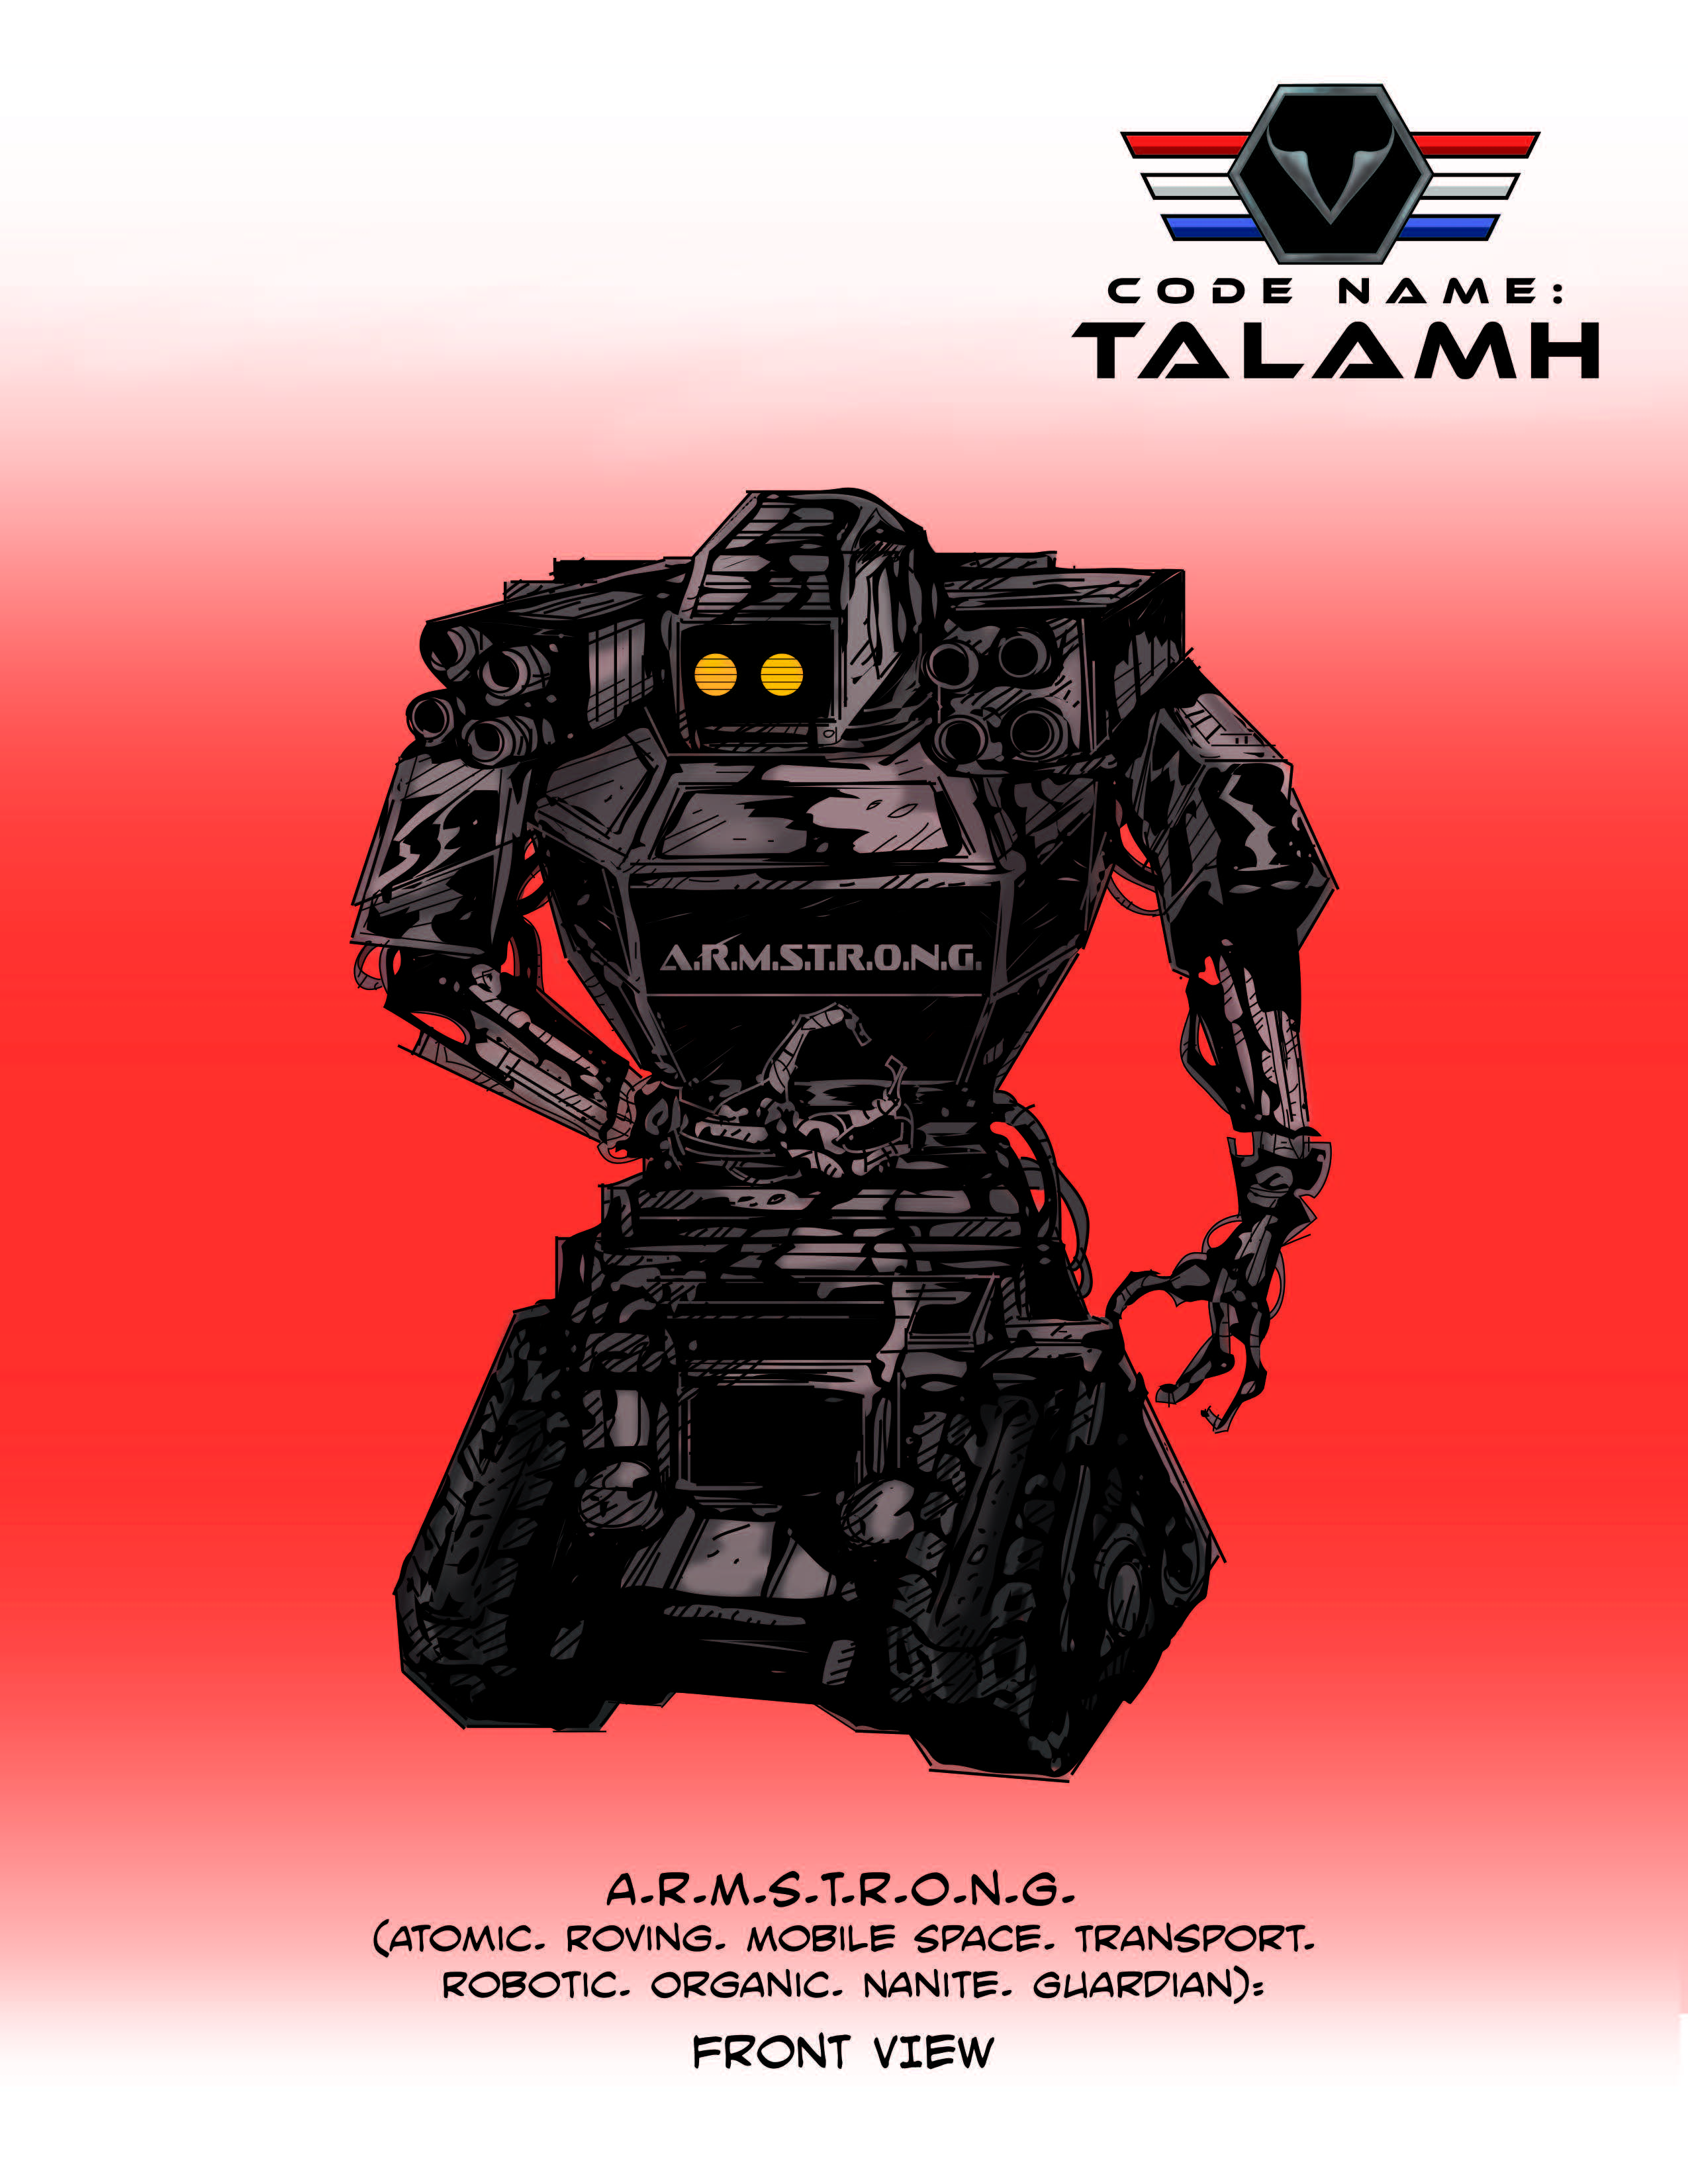 Armstrong-Code Name: Talamh